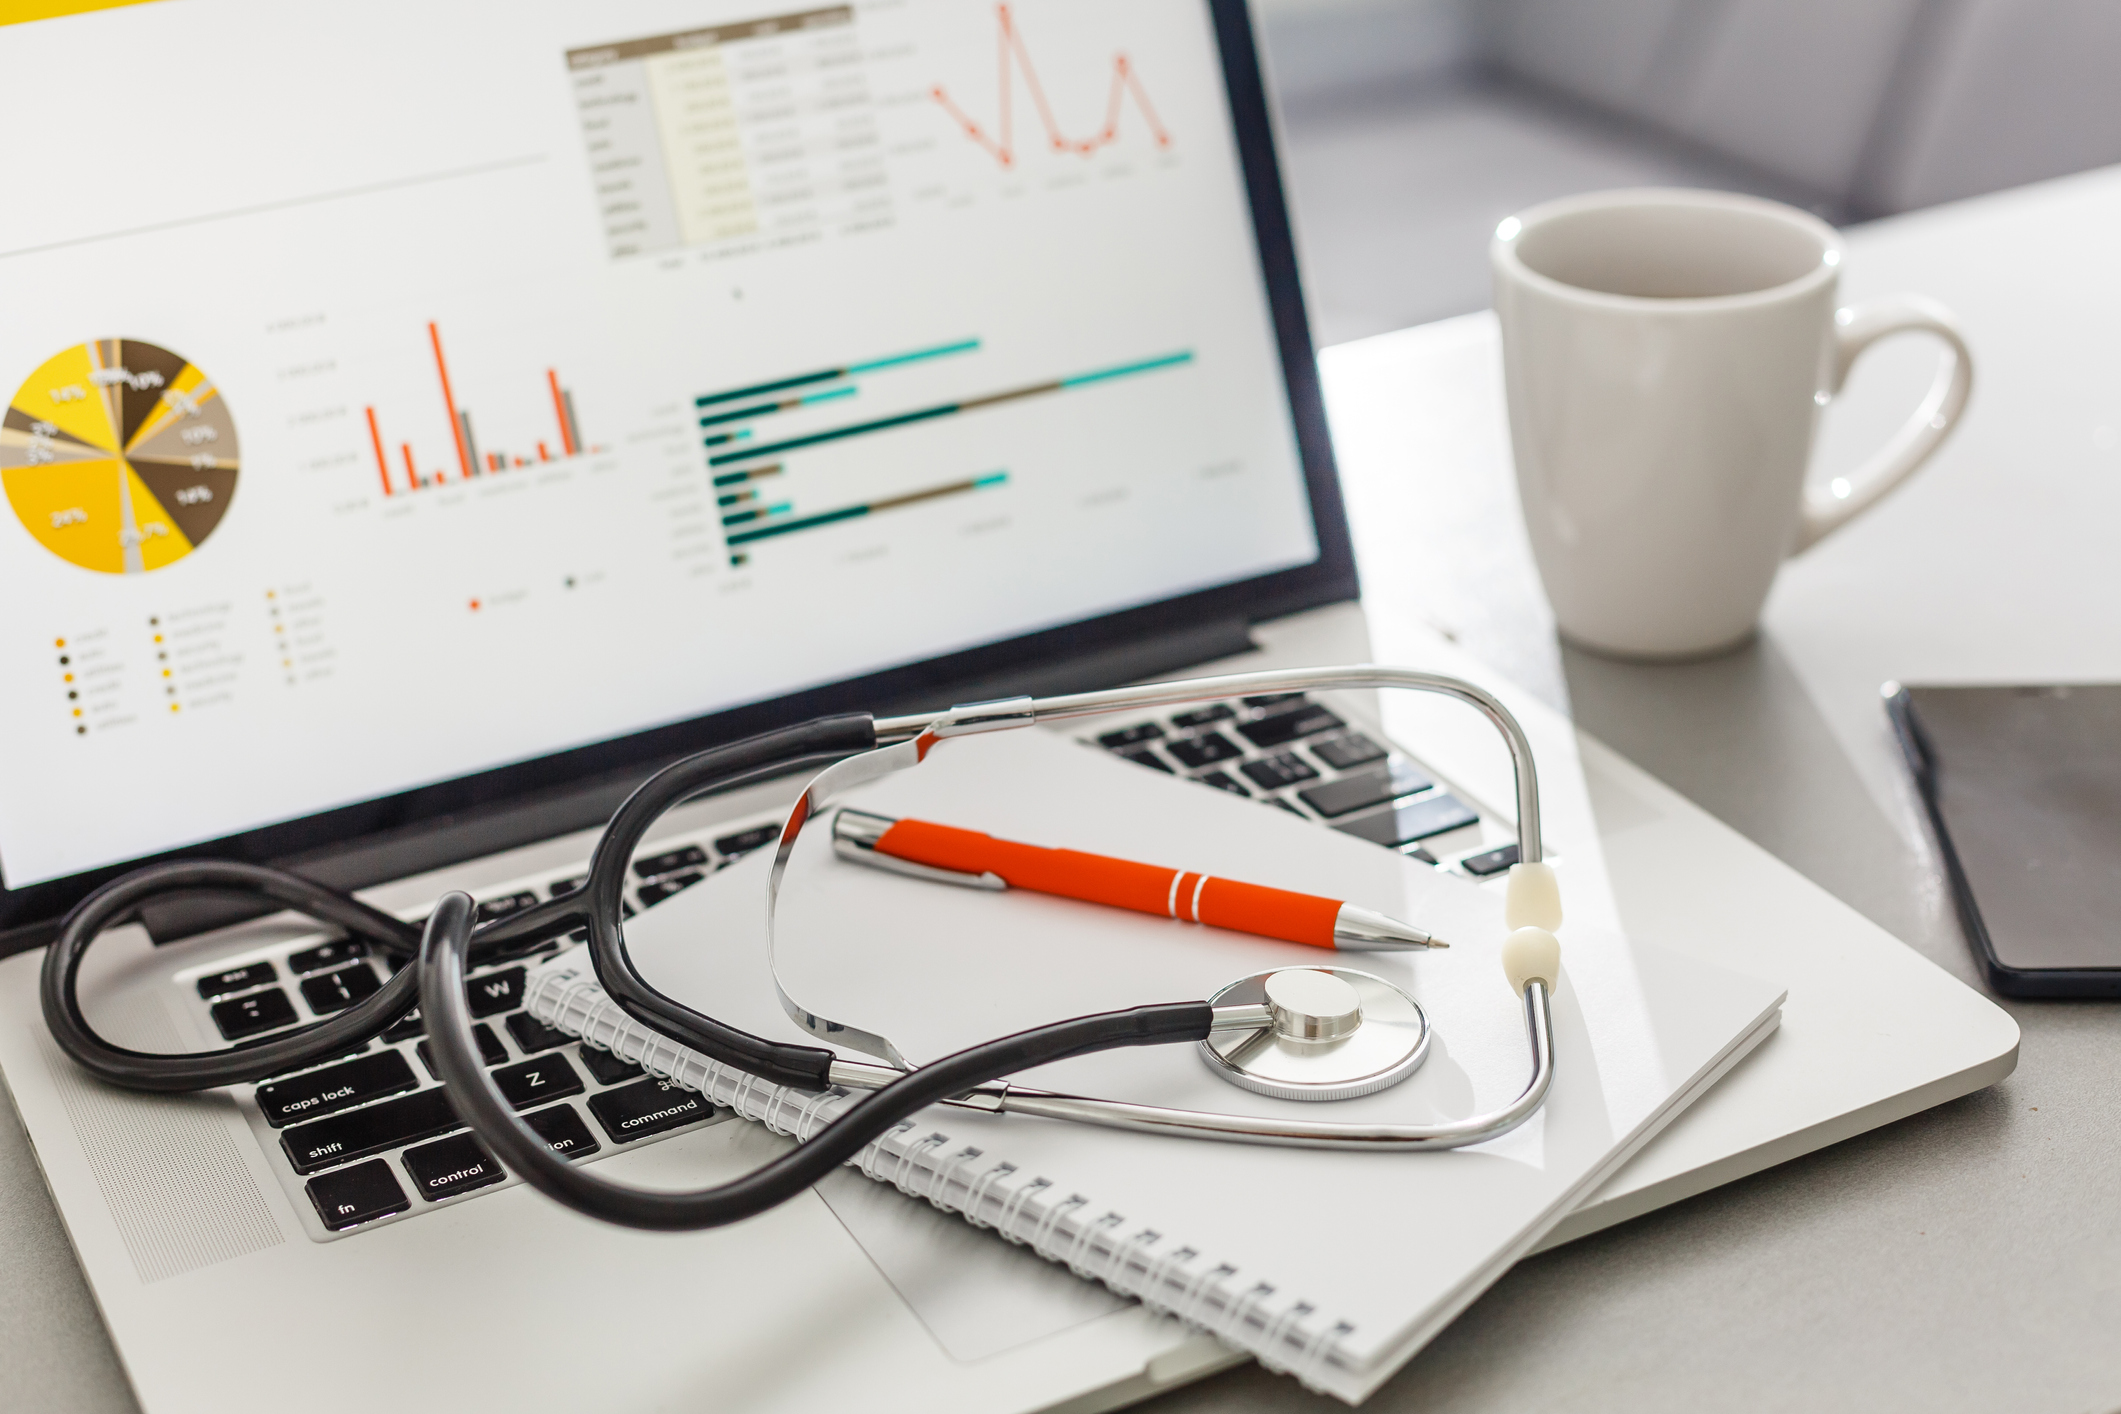 computer-monitor-with-keyboard-notebook-stethoscope-and-coffee-mug